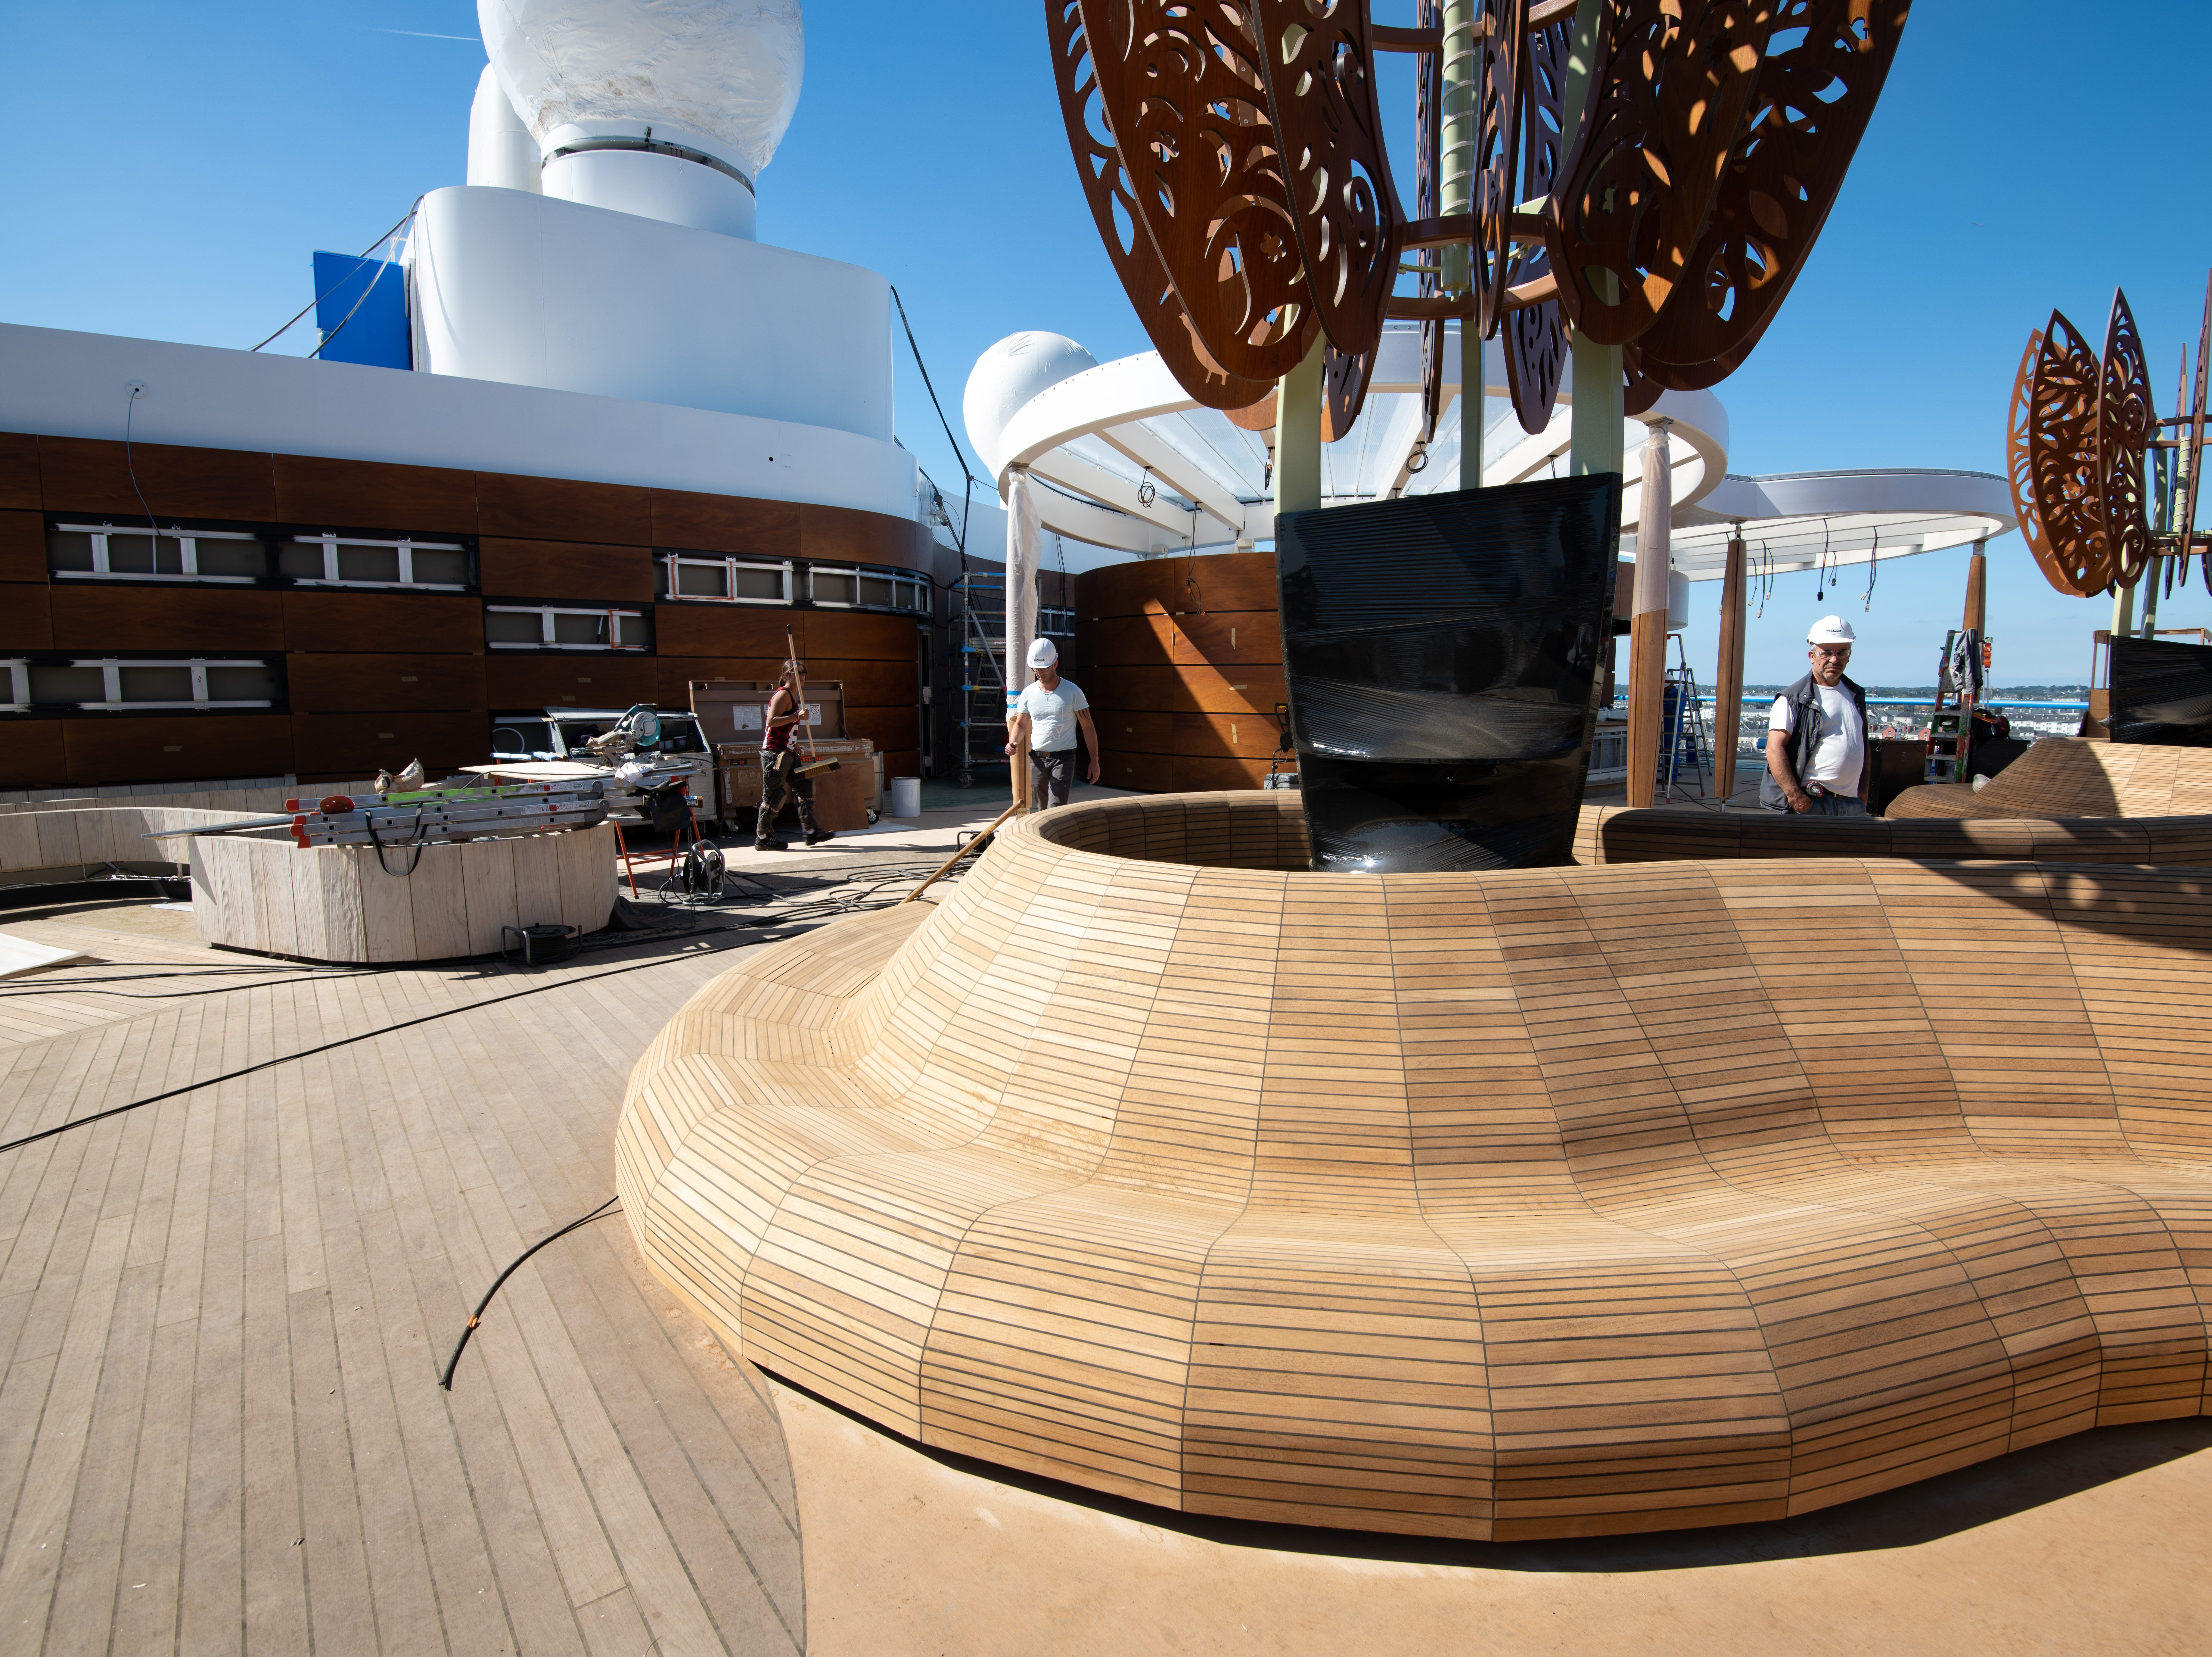 A curving teak bench in the Rooftop Garden.